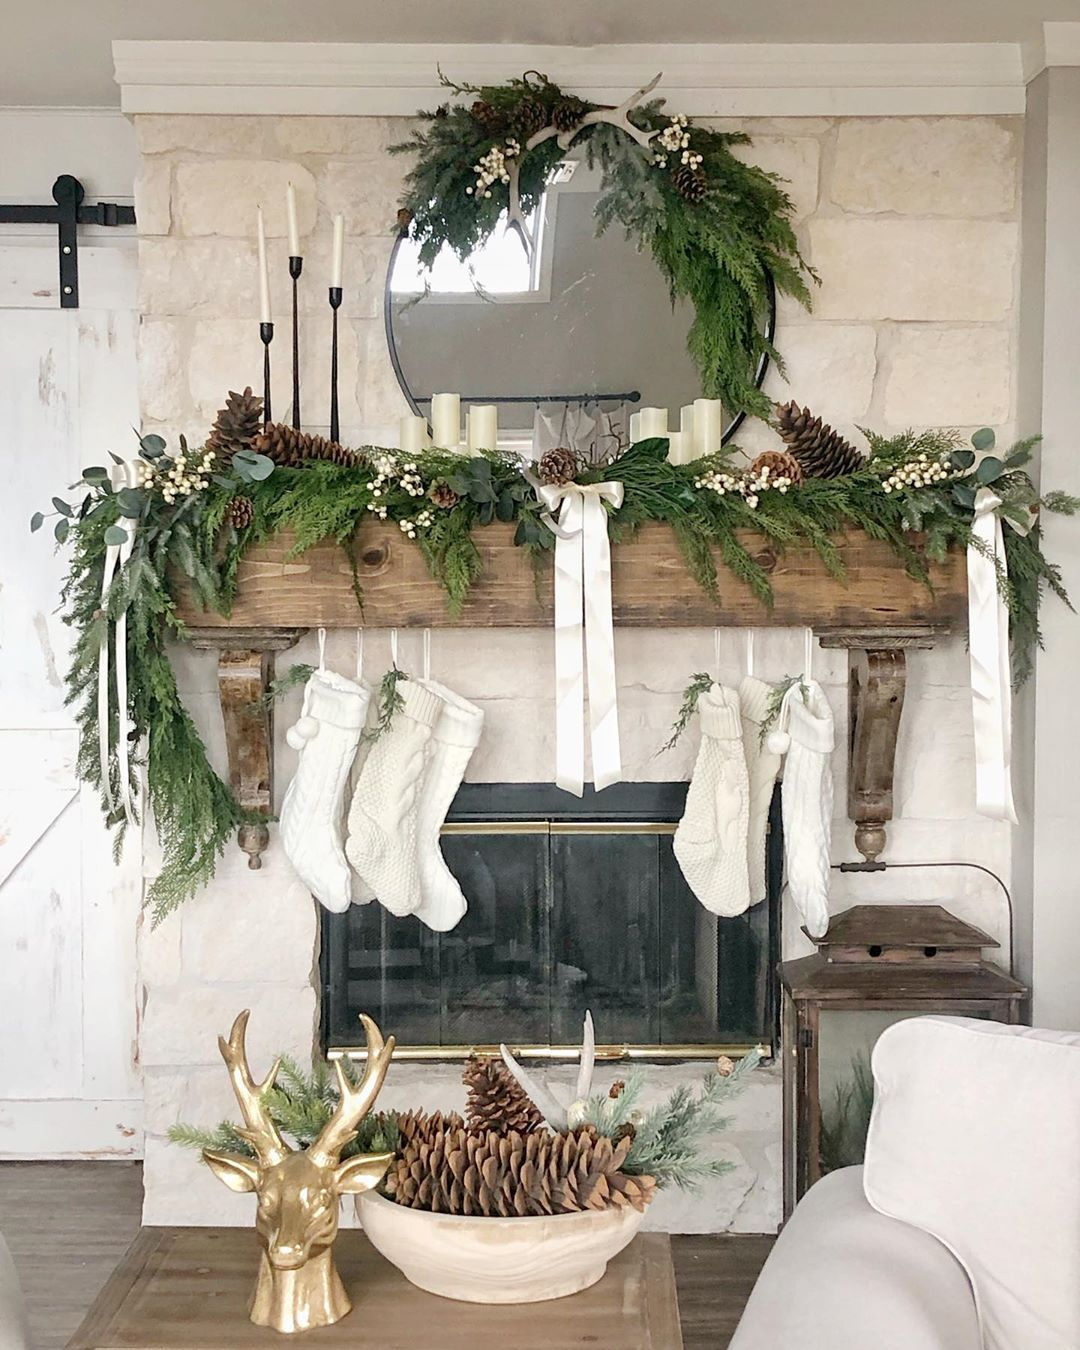 For eco-friendly Christmas decorating ideas, this list of 10 all-natural holiday decorations has got you covered.